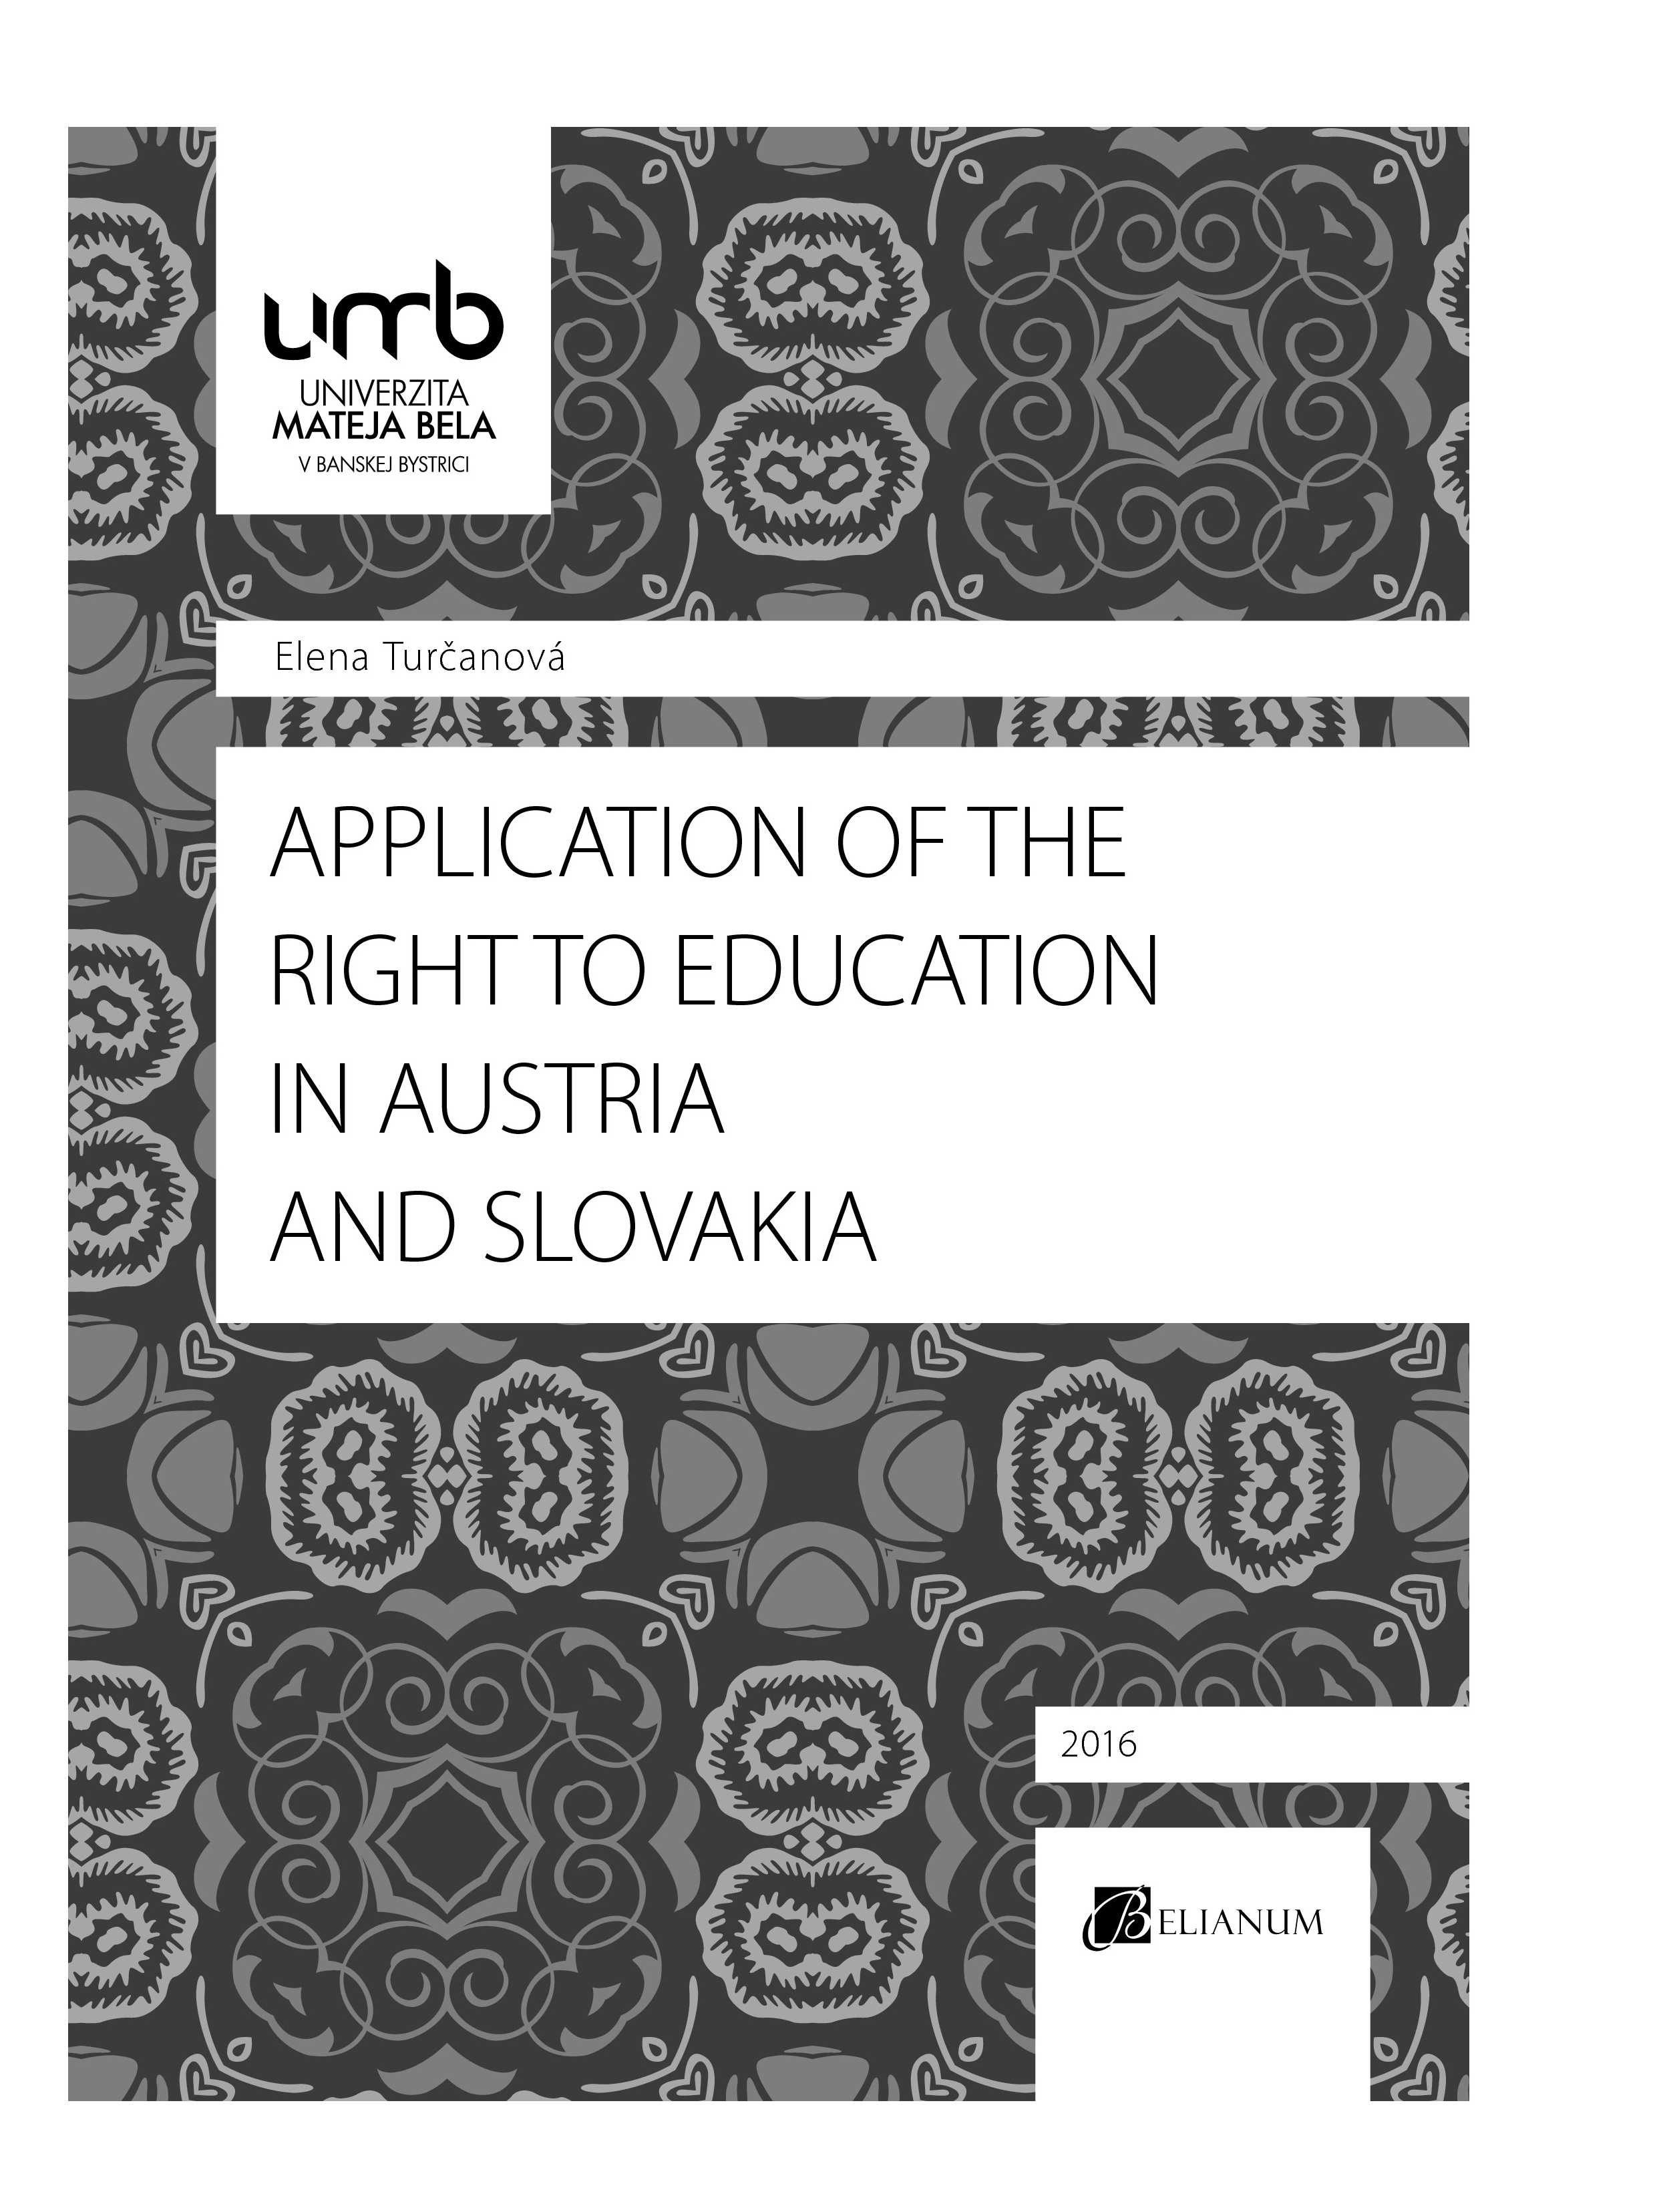 Application of the Right to education in Austria and Slovakia